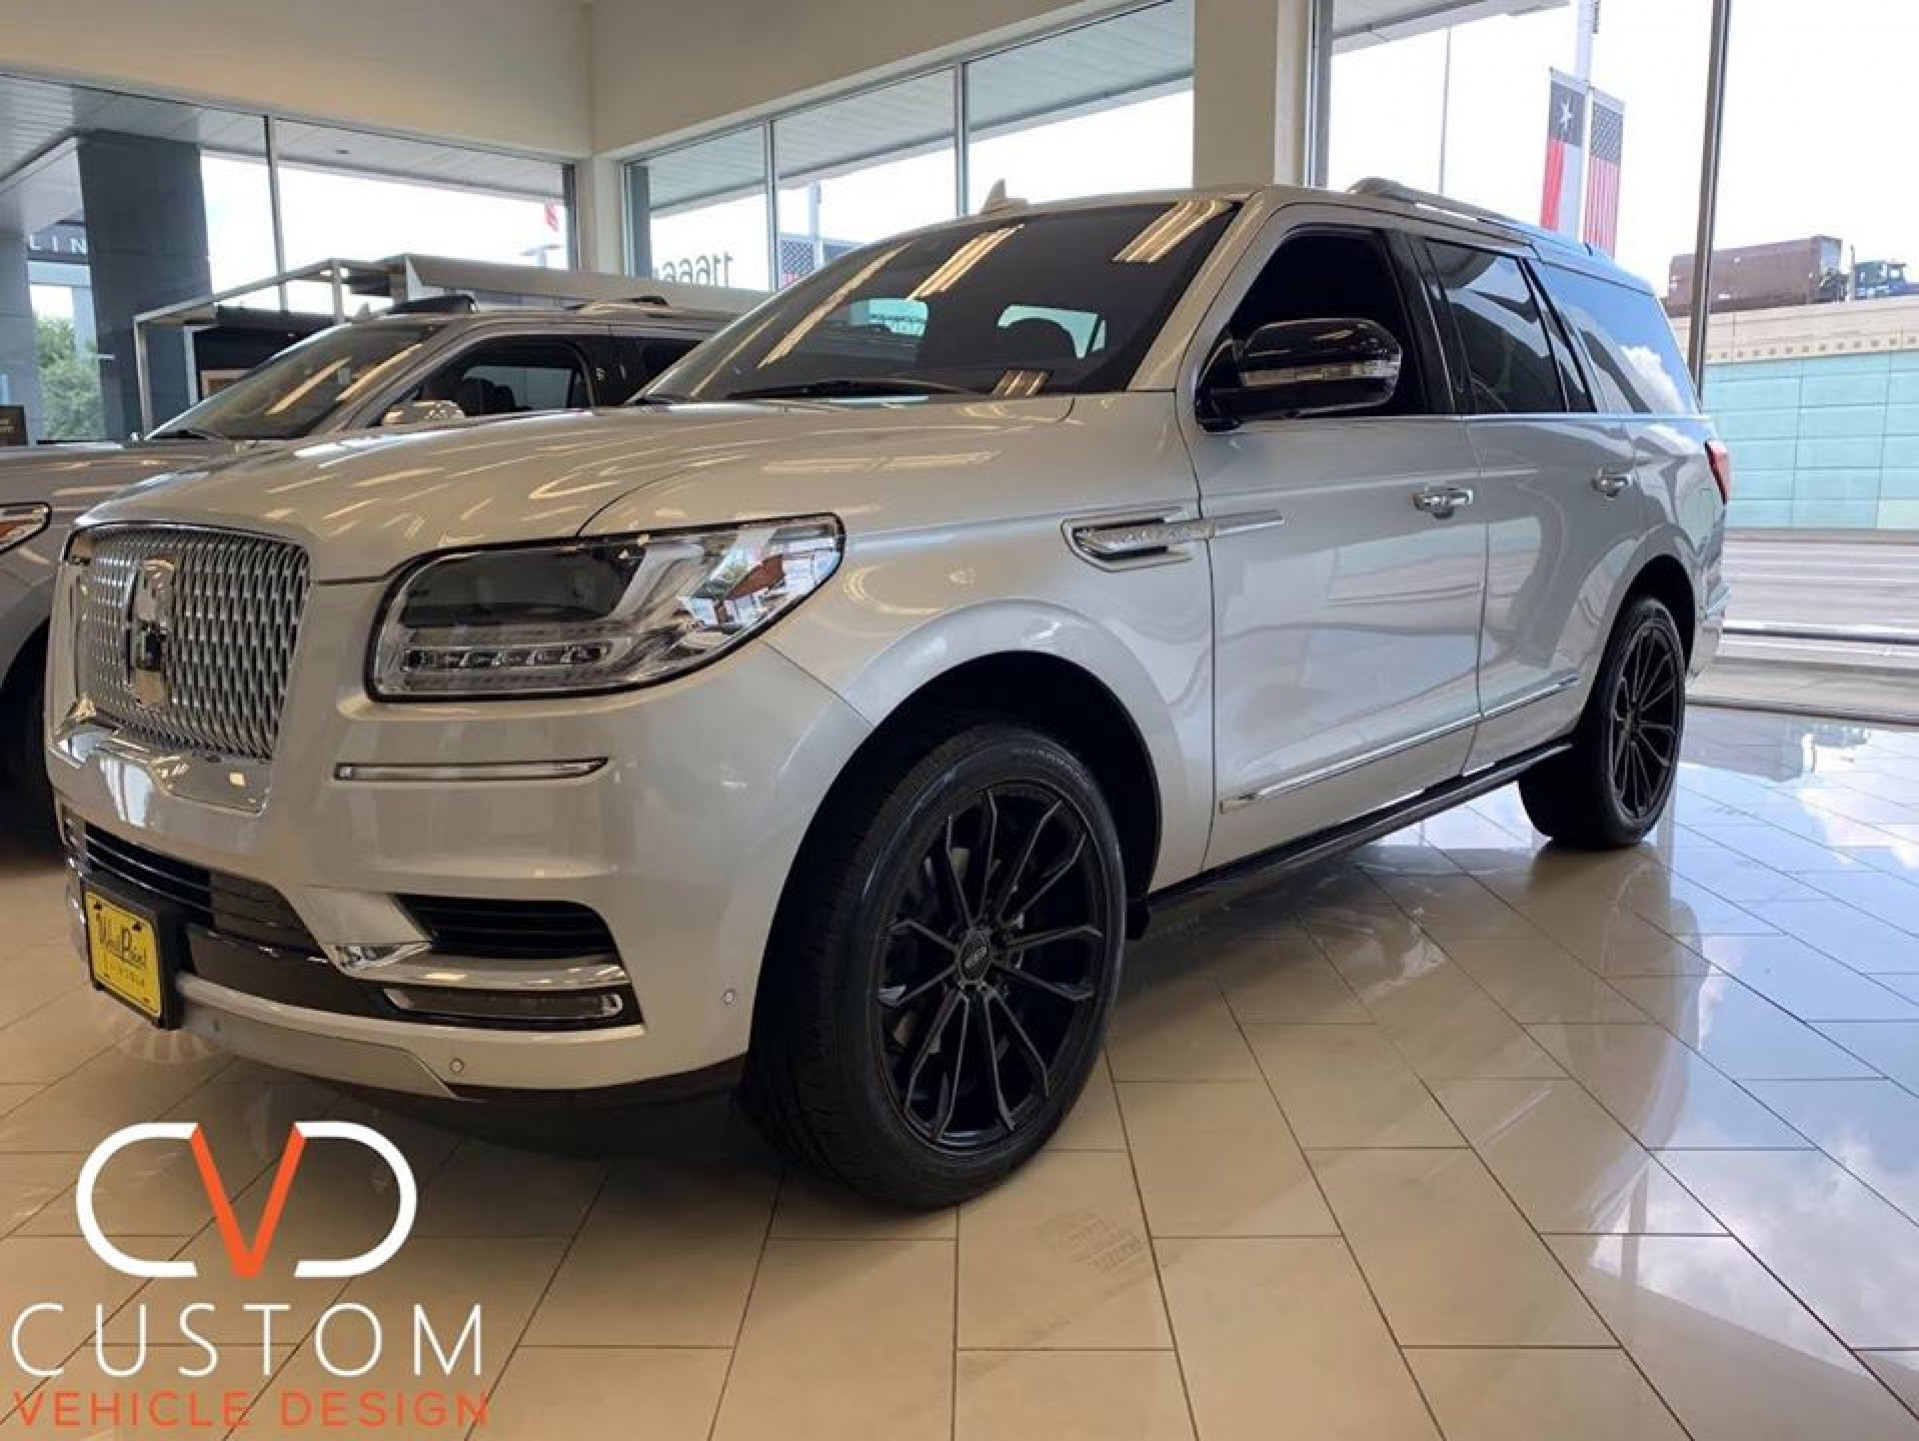 2020 Lincoln Navigator with Status Mastodon wheels